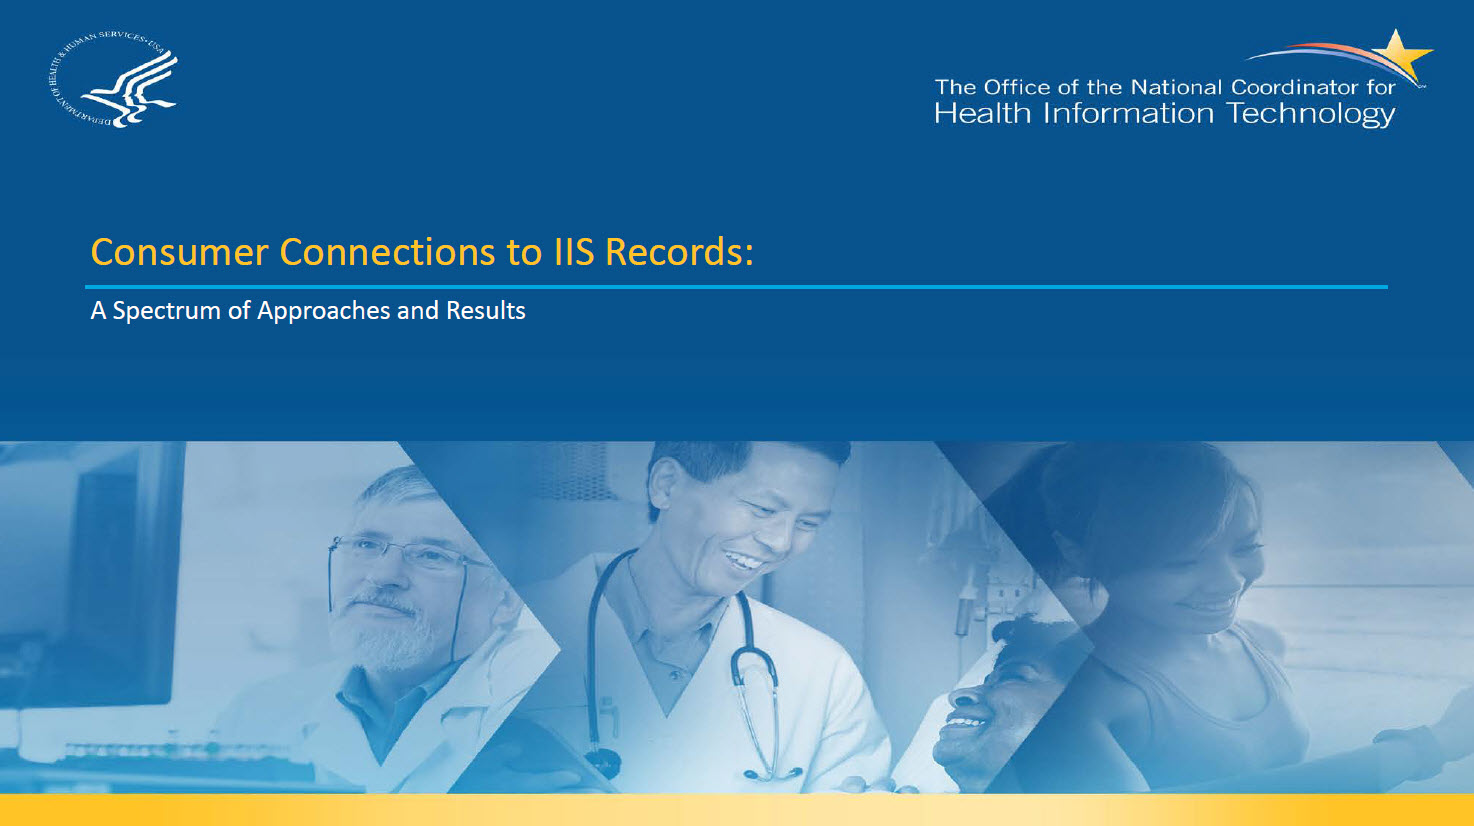 Consumer Connections to IIS Records: A Spectrum of Approaches and Results